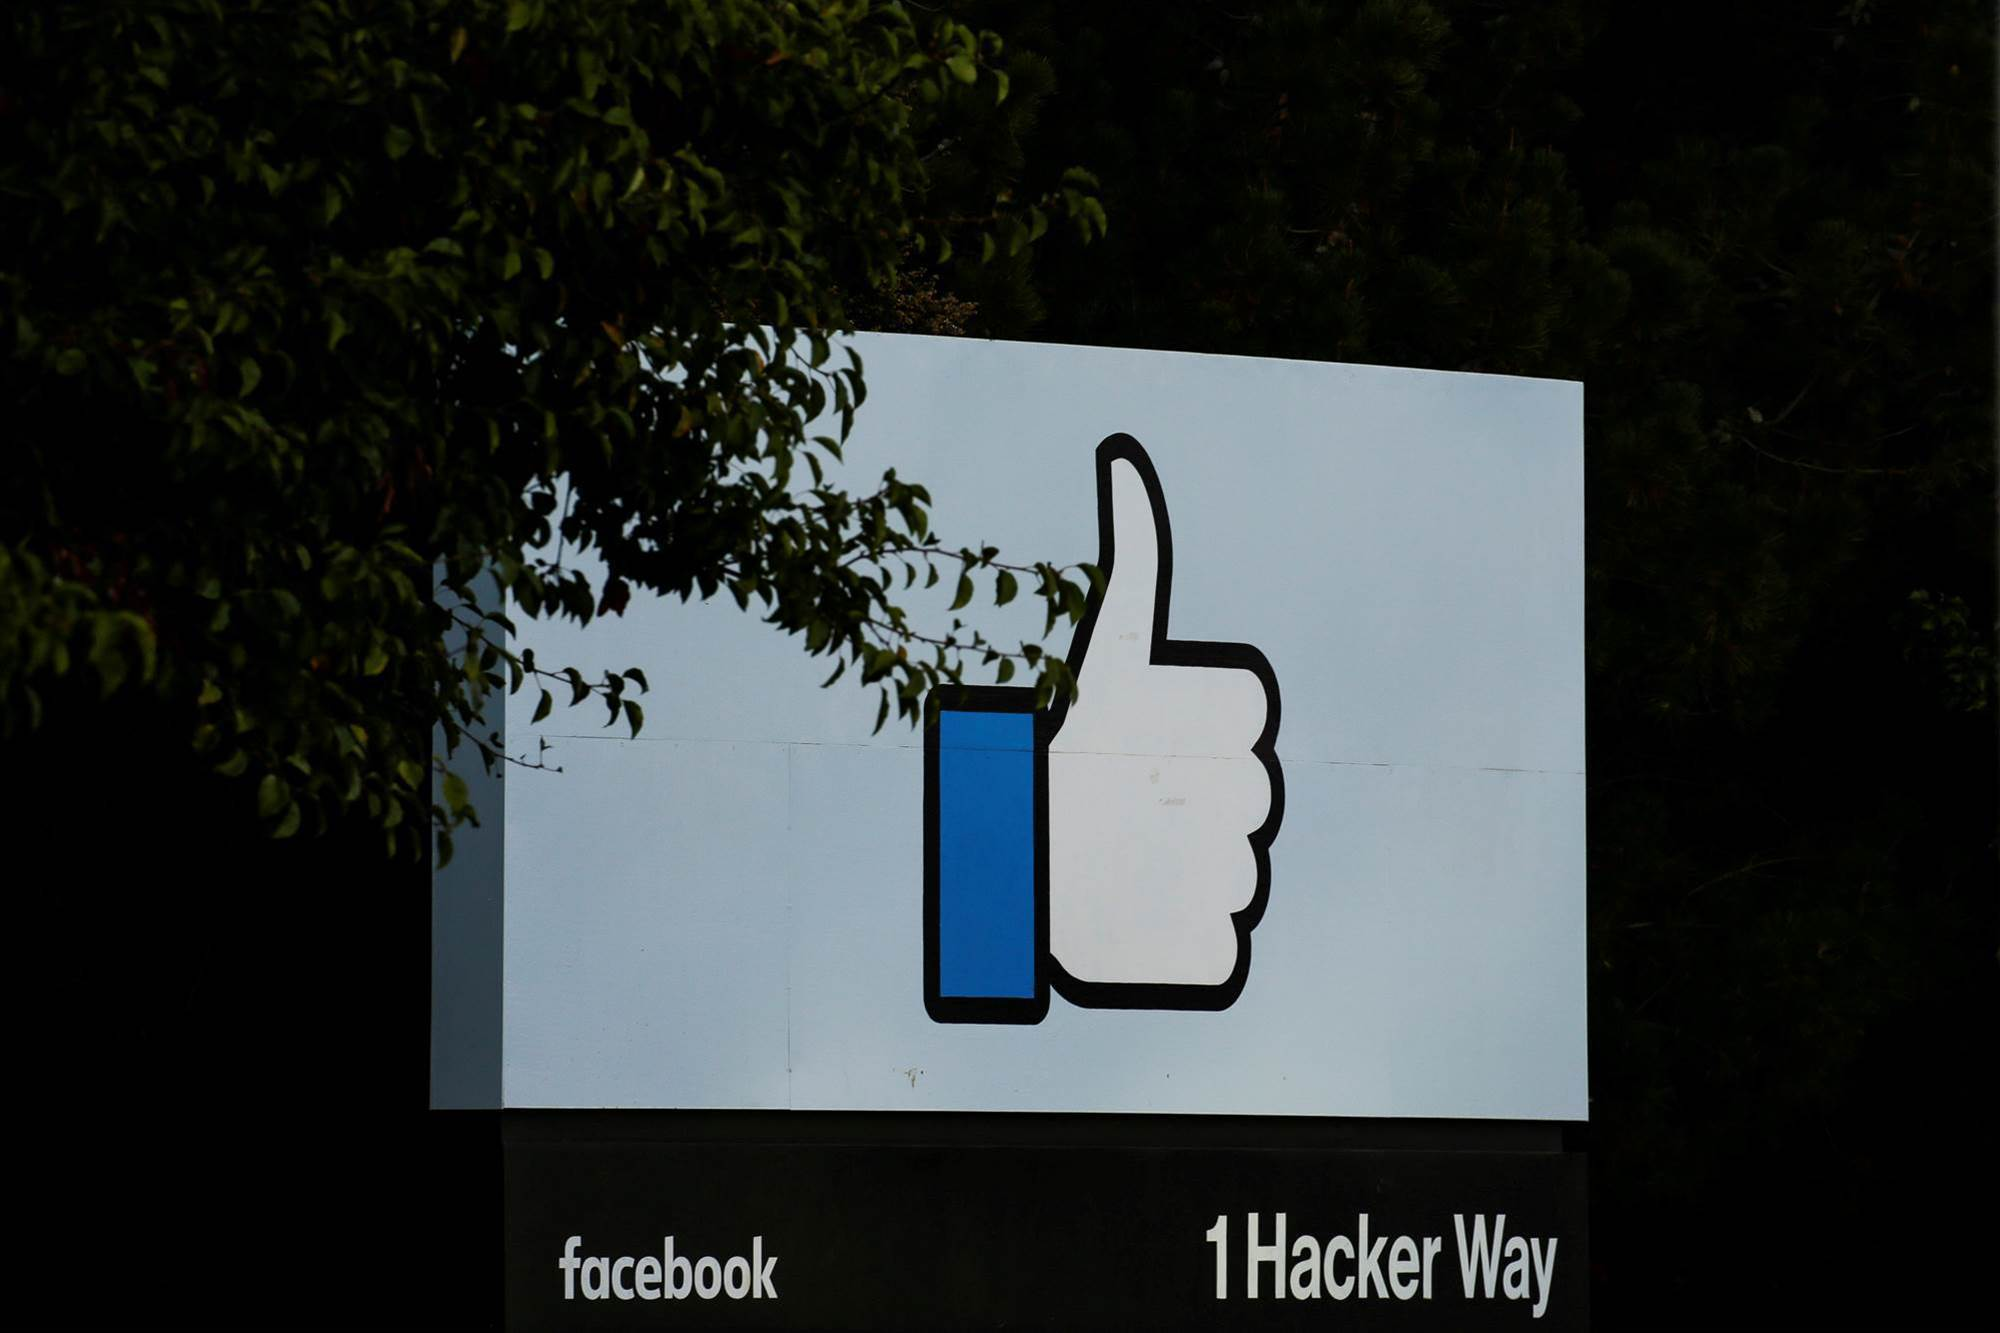 Irish regulator investigates Facebook over private photo glitch